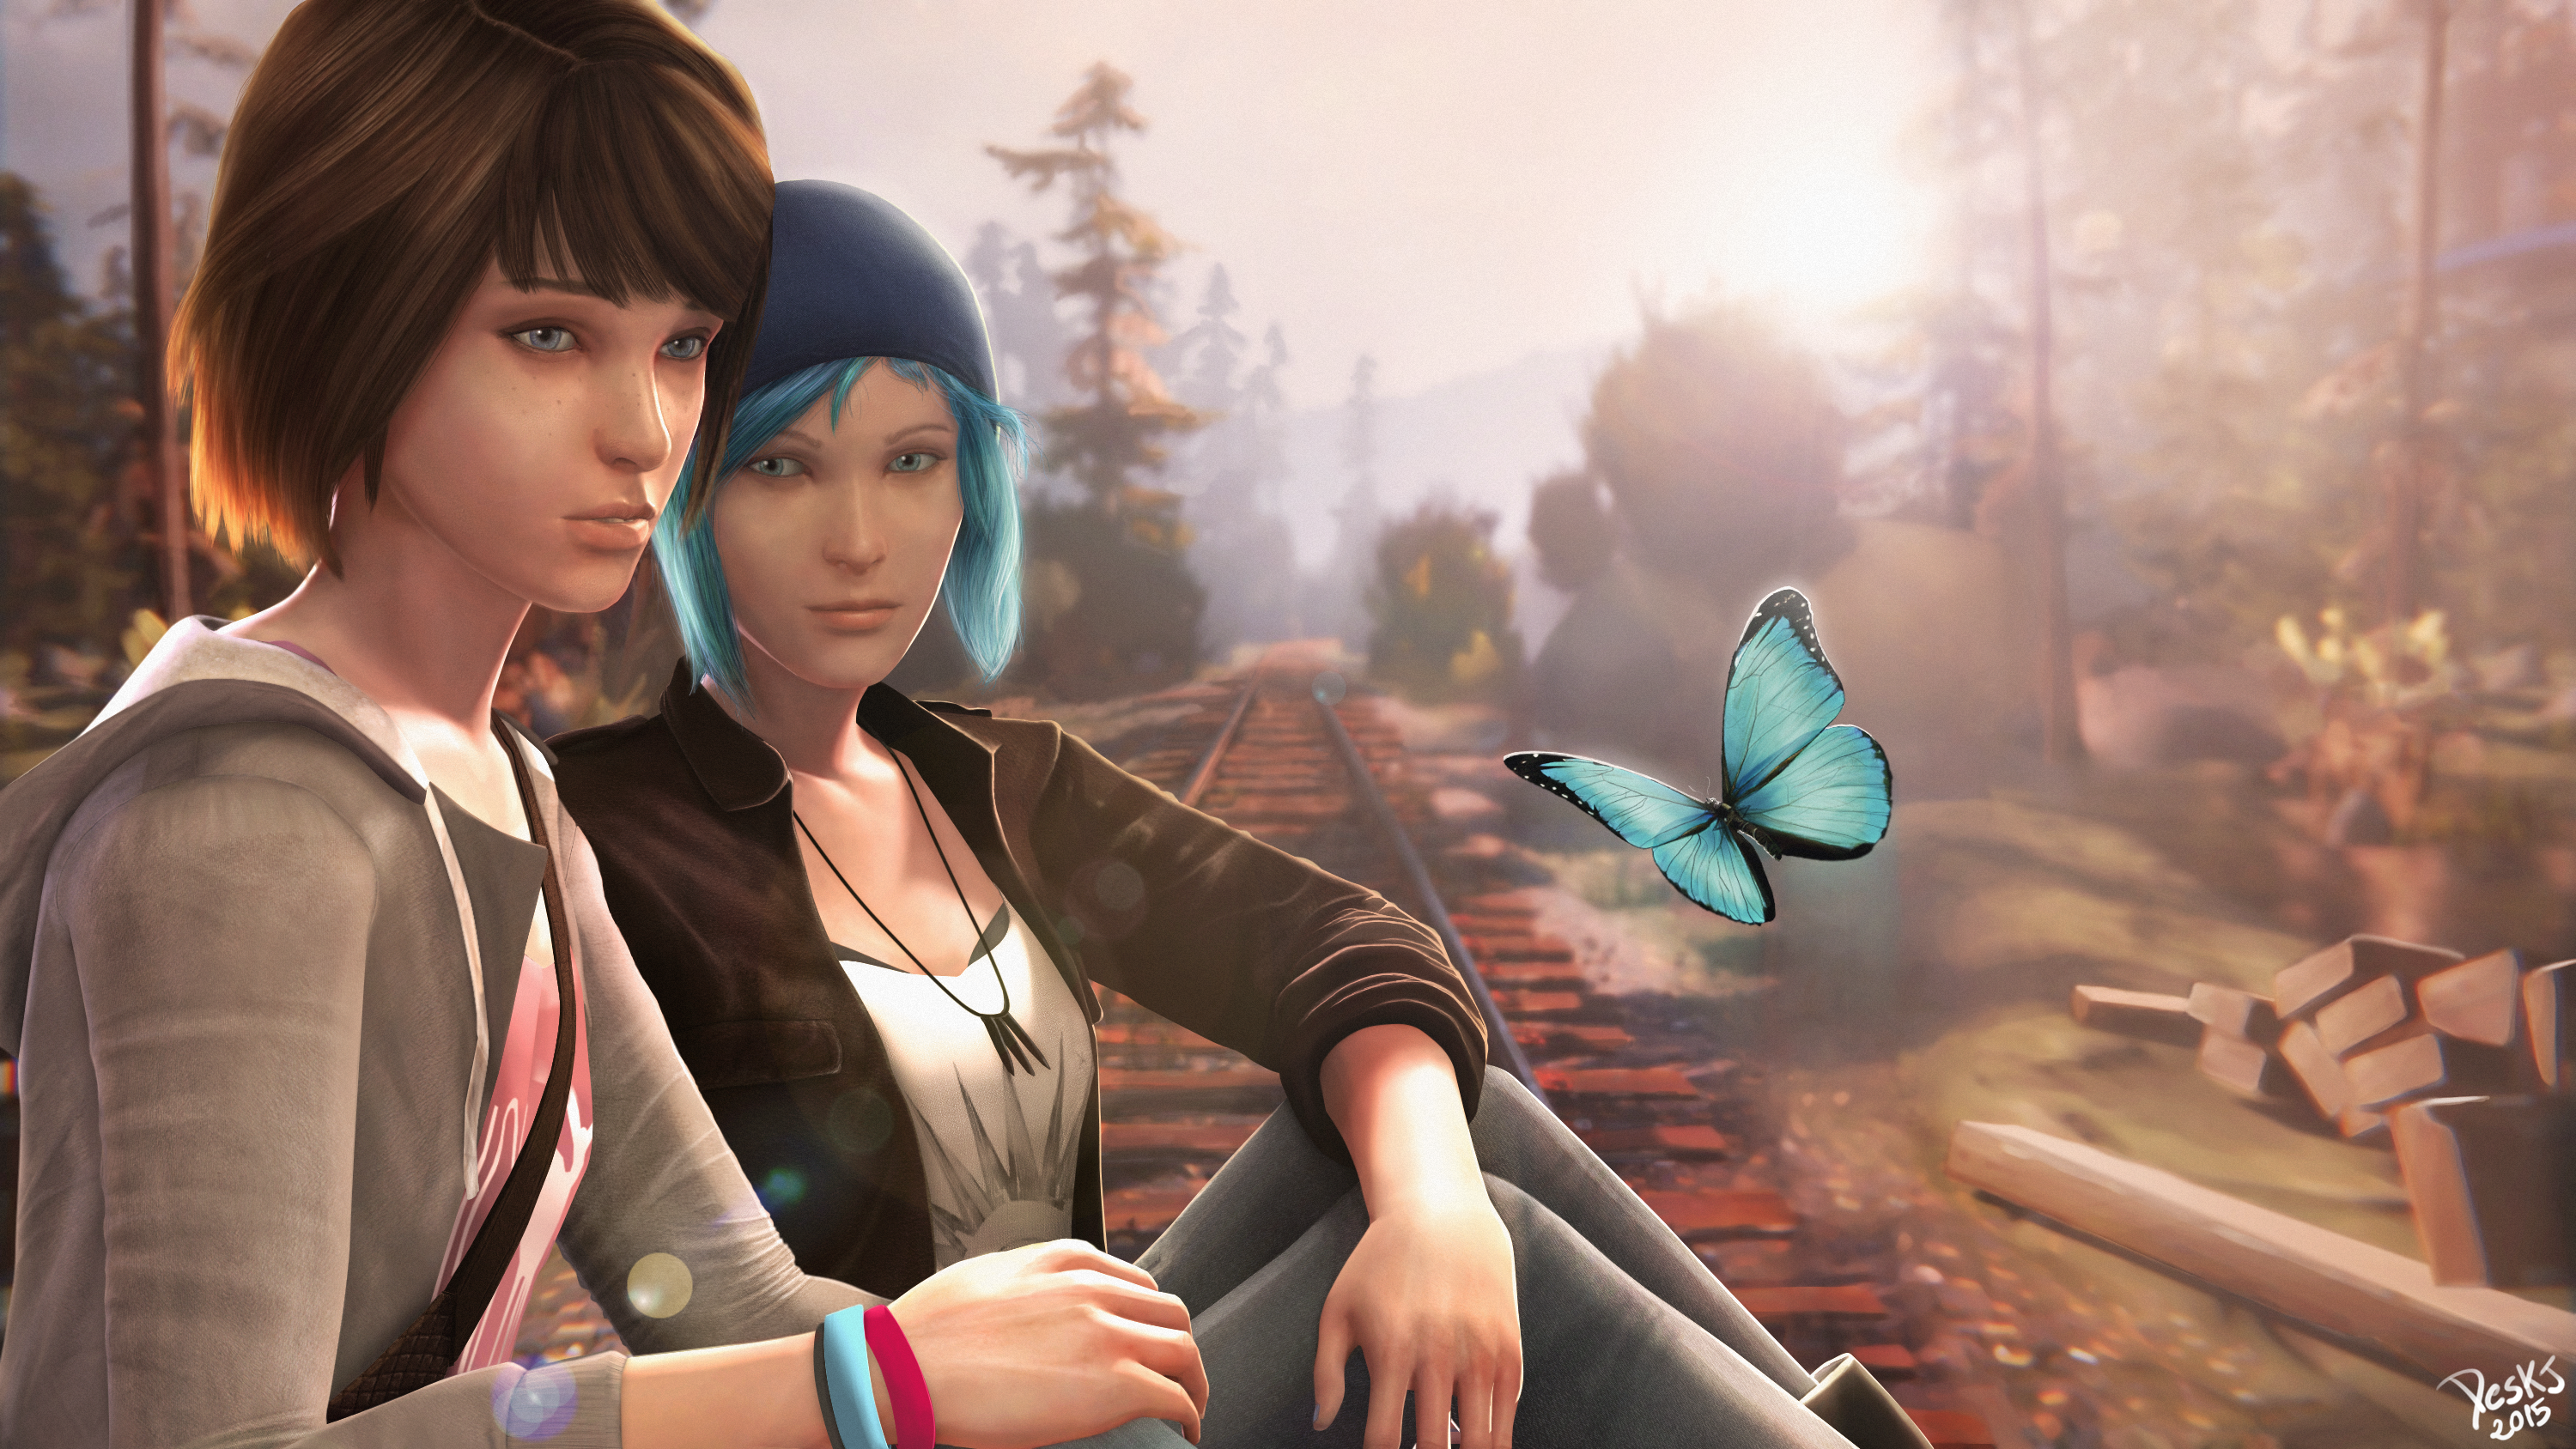 Max Caulfield Life Is Strange 2 Hd Games 4k Wallpapers Images